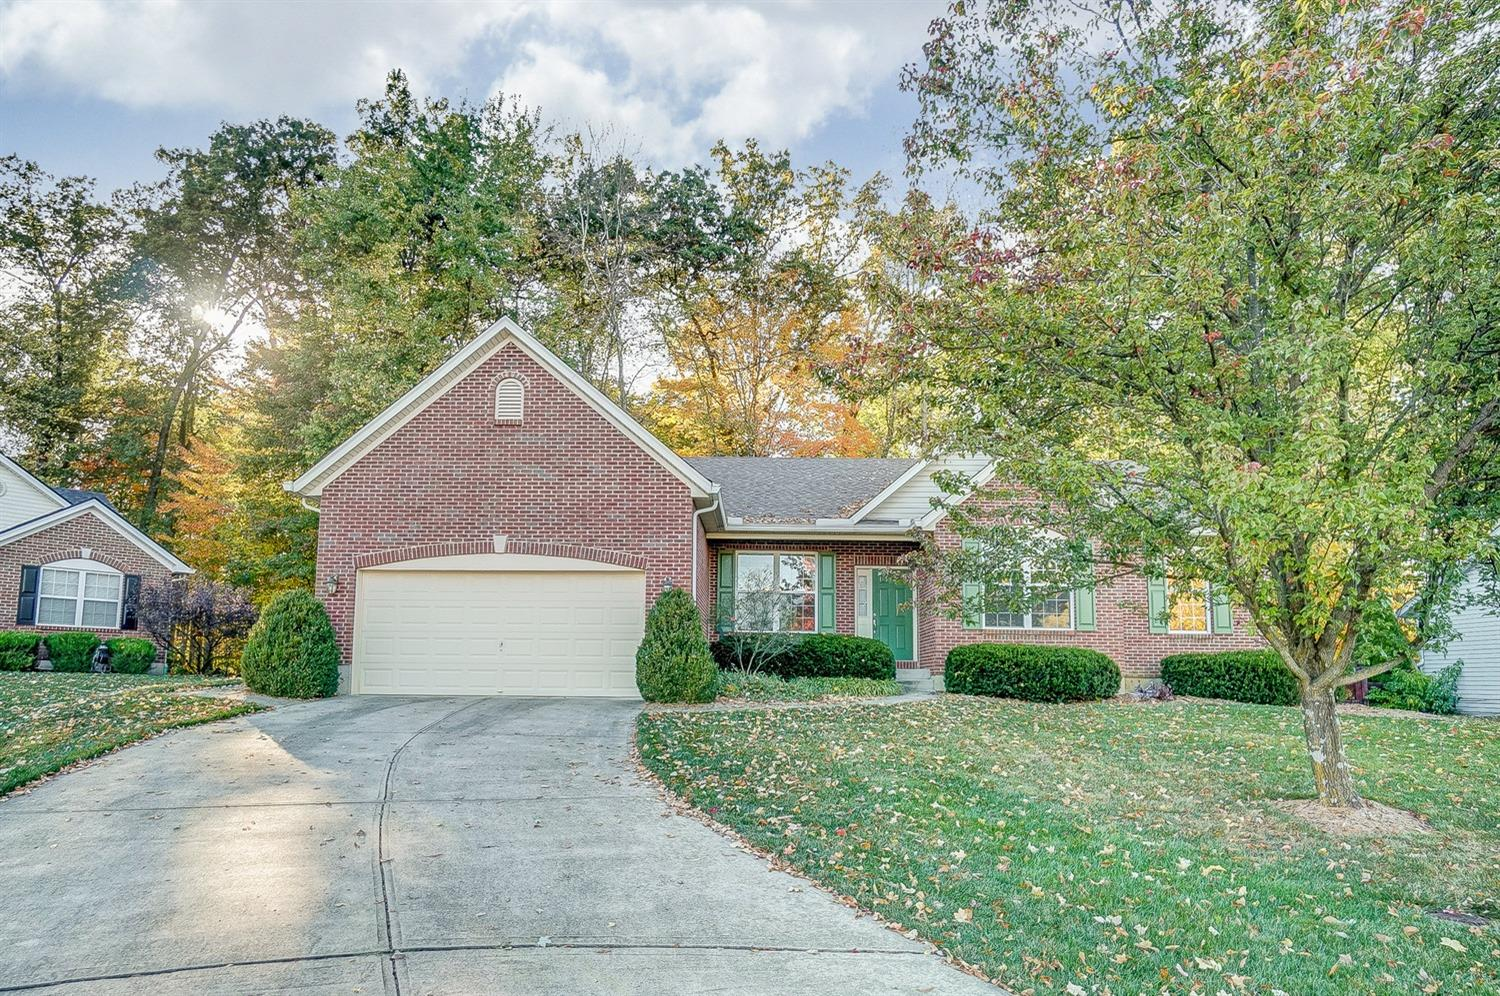 Property for sale at 7468 Wethersfield Drive, Hamilton Twp,  Ohio 45039